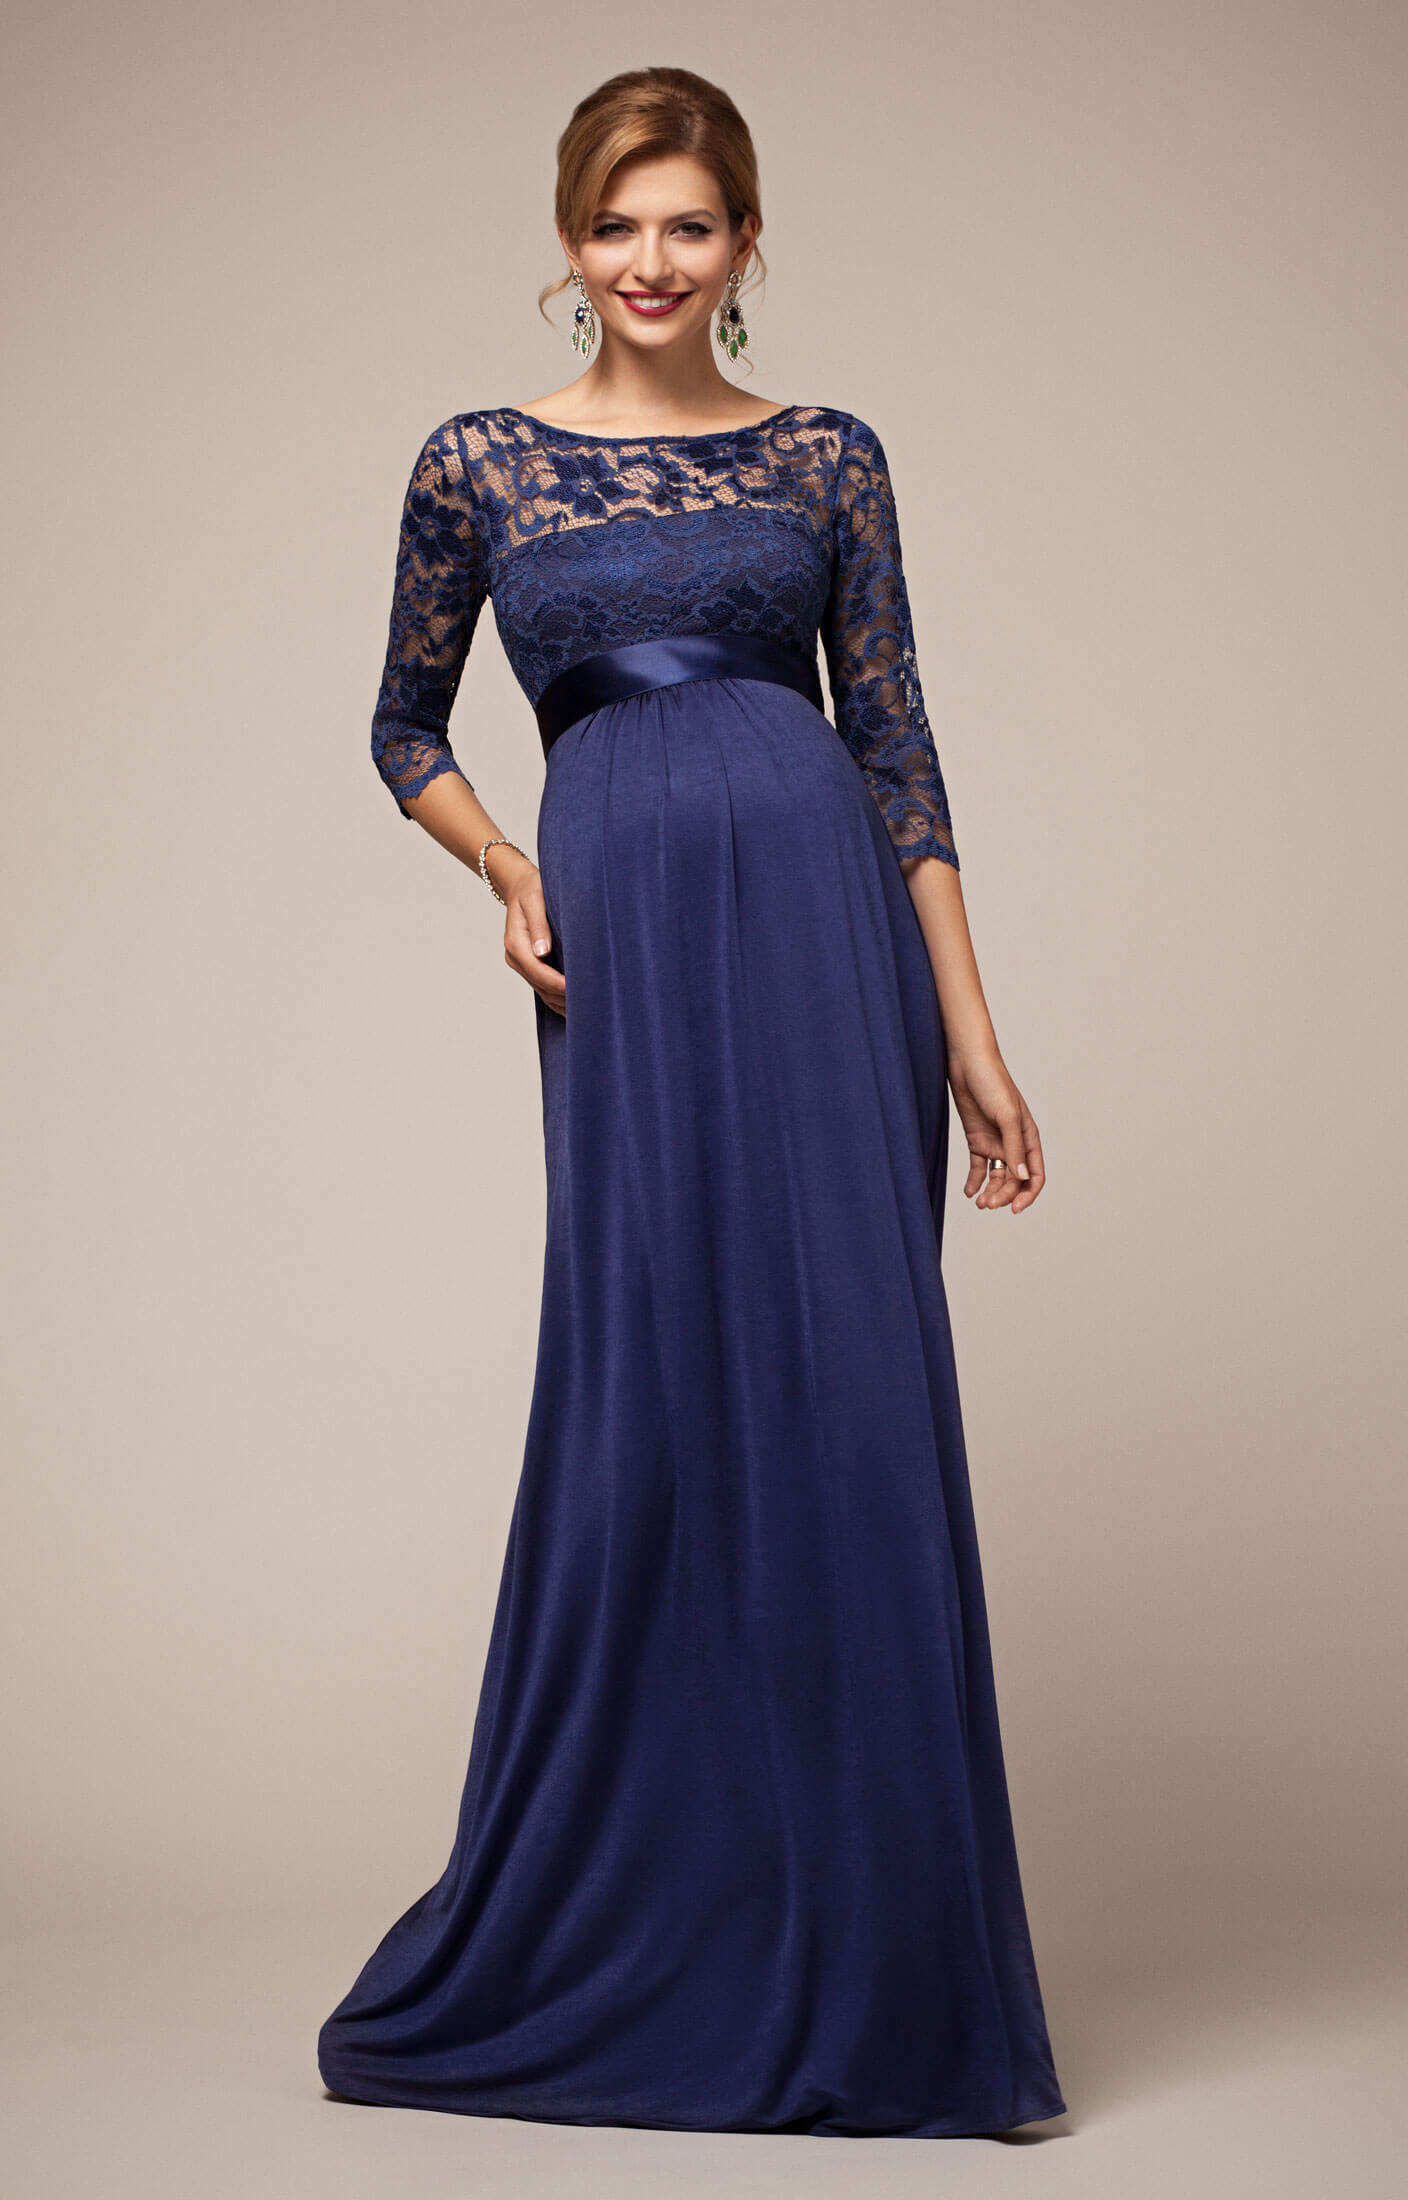 Lucia maternity gown windsor blue maternity wedding for Pregnancy dress for wedding